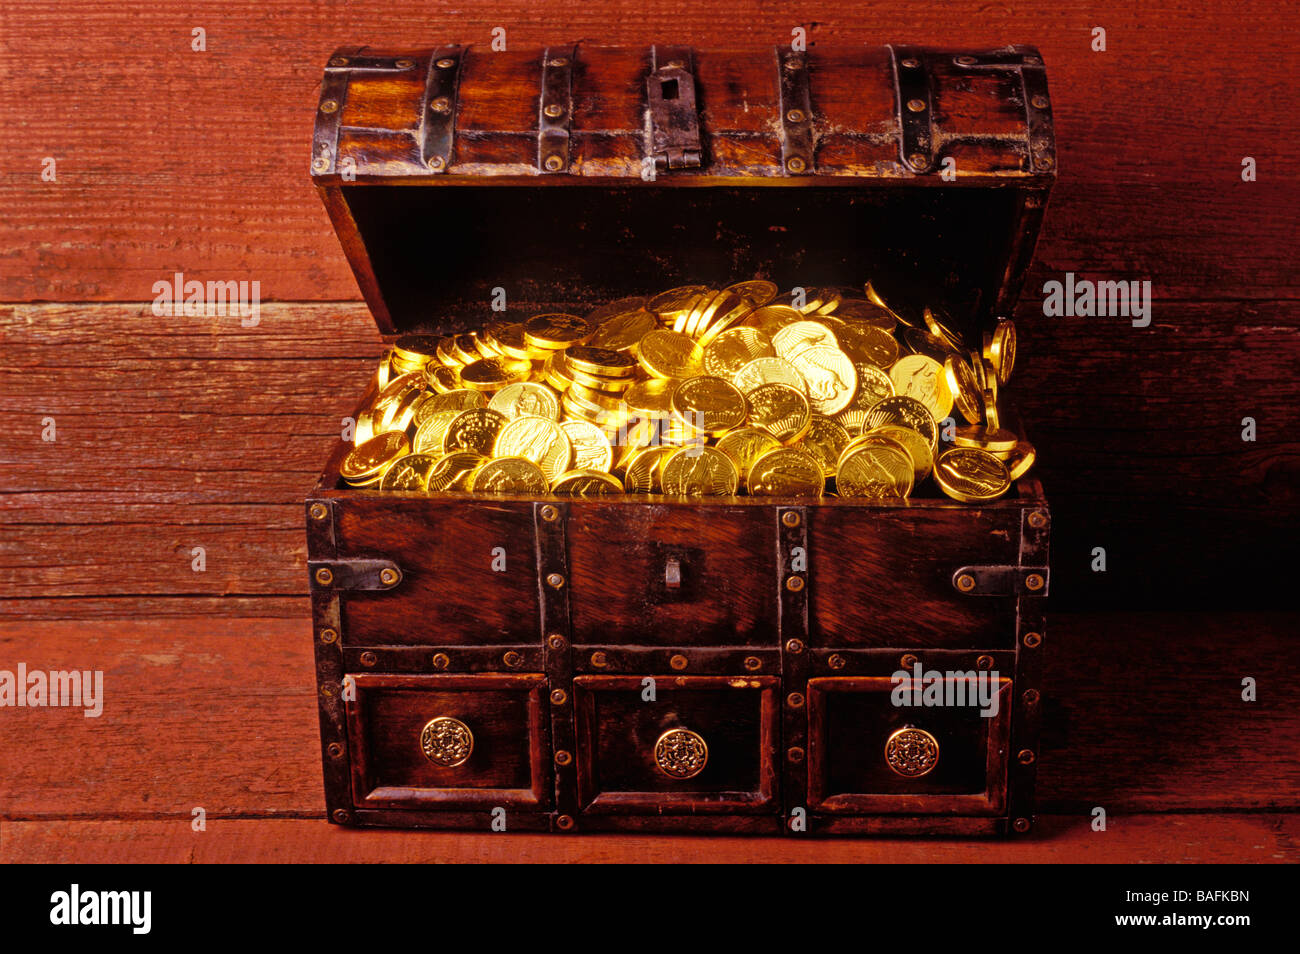 Treasure chest full of gold - Stock Image